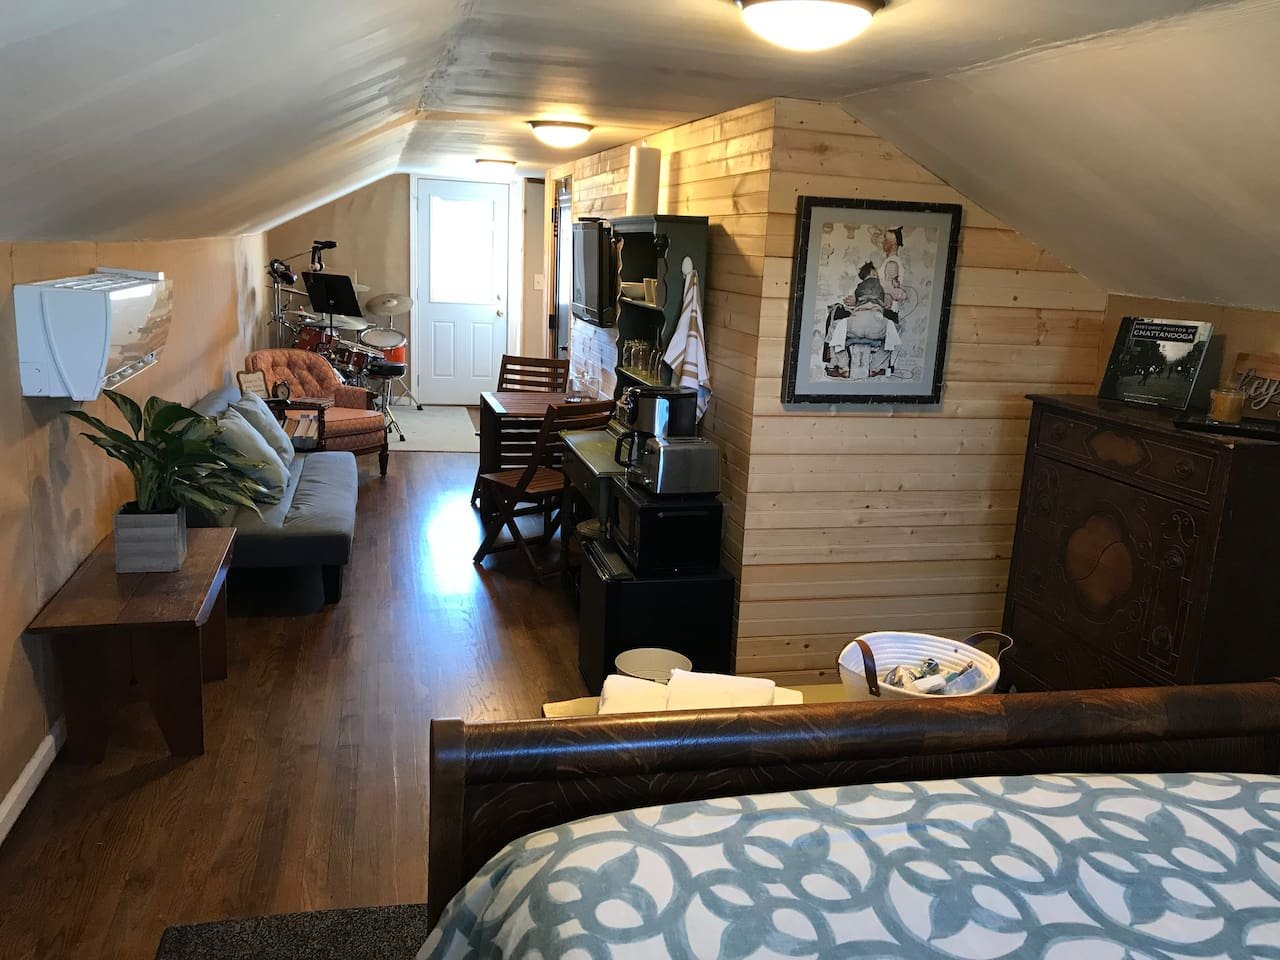 Upstairs Private Suite with bed, futon, dresser, small table and chairs, small kitchenette.